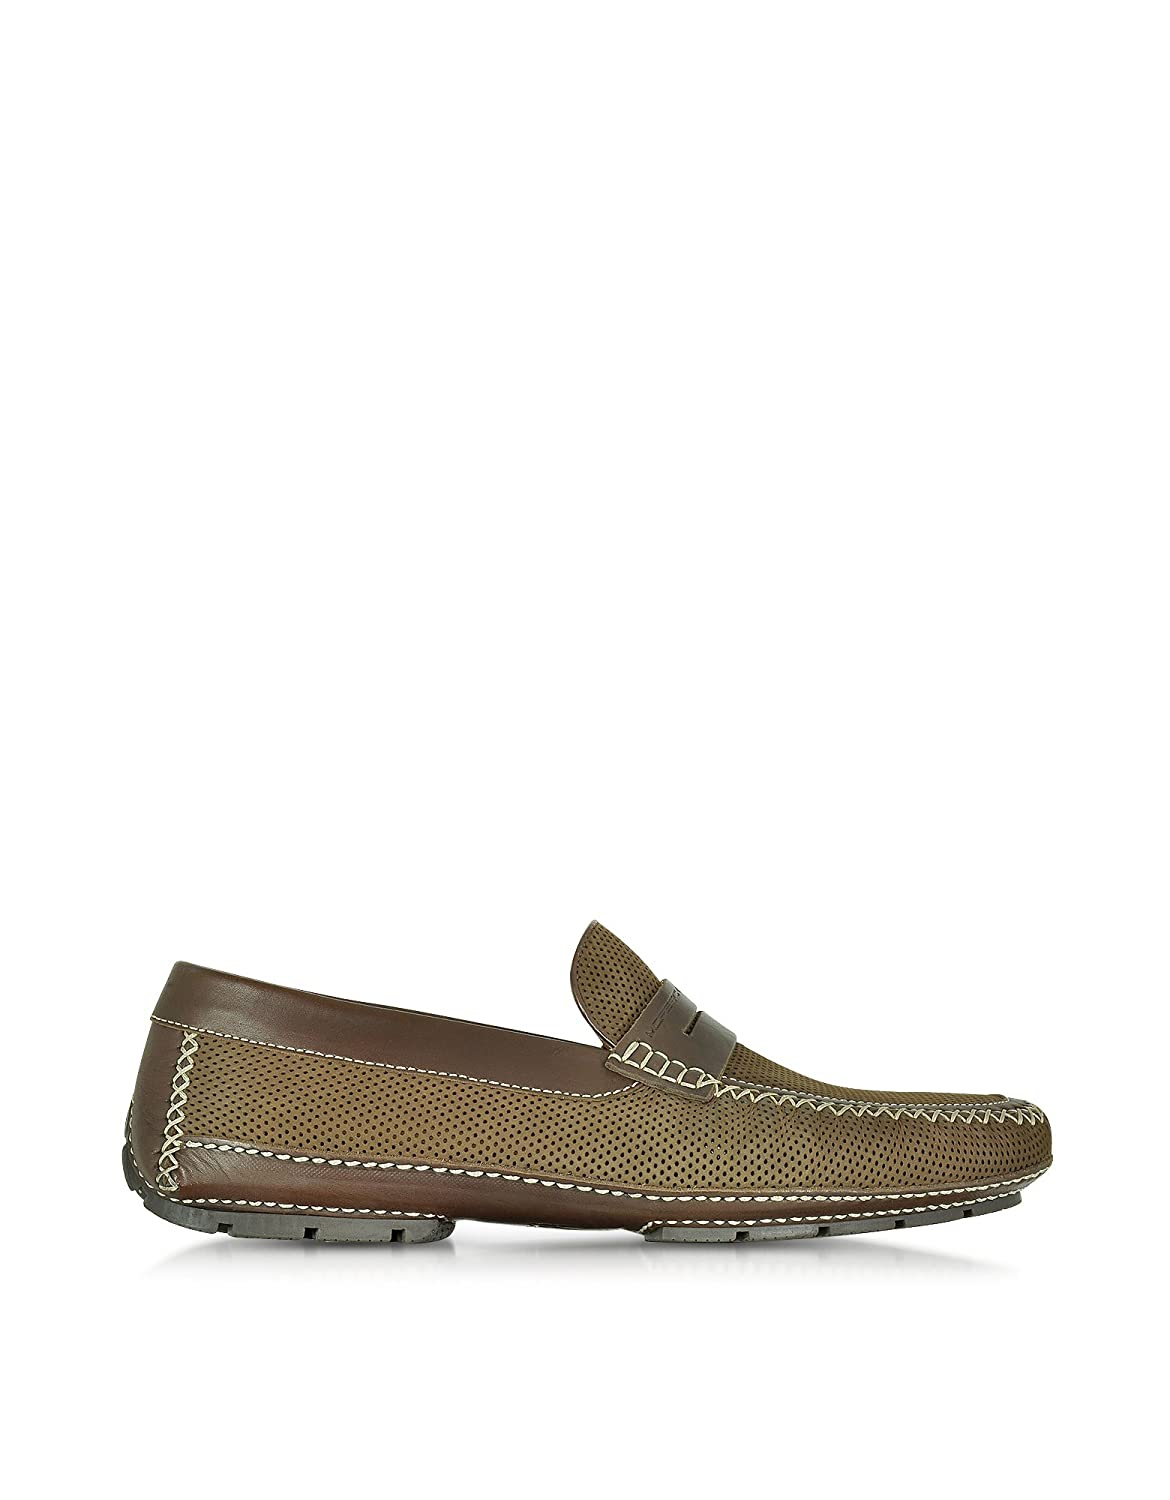 MORESCHI MEN'S 41599SHBAHAMASBROWN BROWN LEATHER LOAFERS